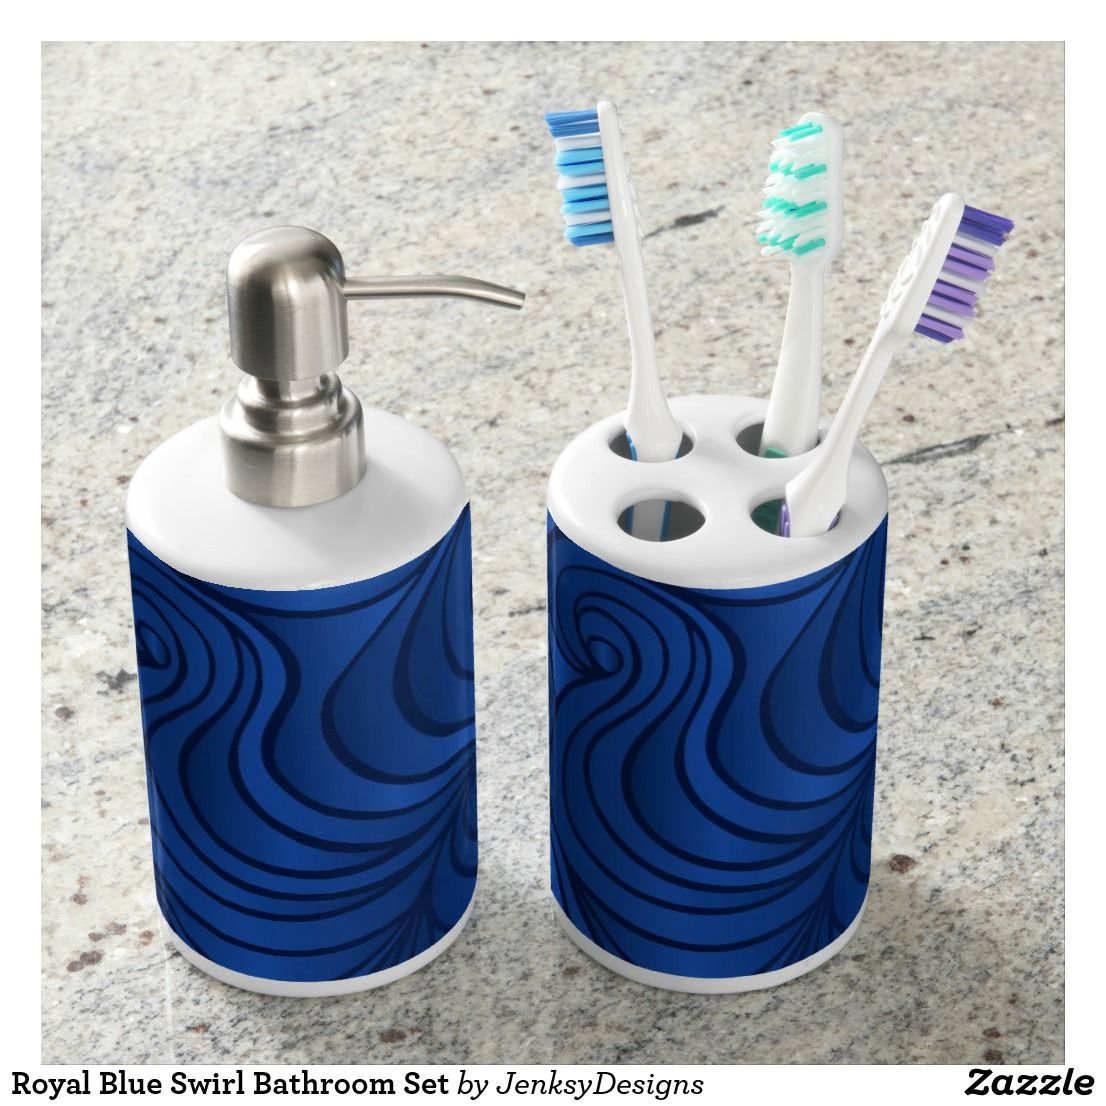 Royal Blue Swirl Bathroom Set Zazzle Com Bath Accessories Set Soap Dispenser Brushing Teeth